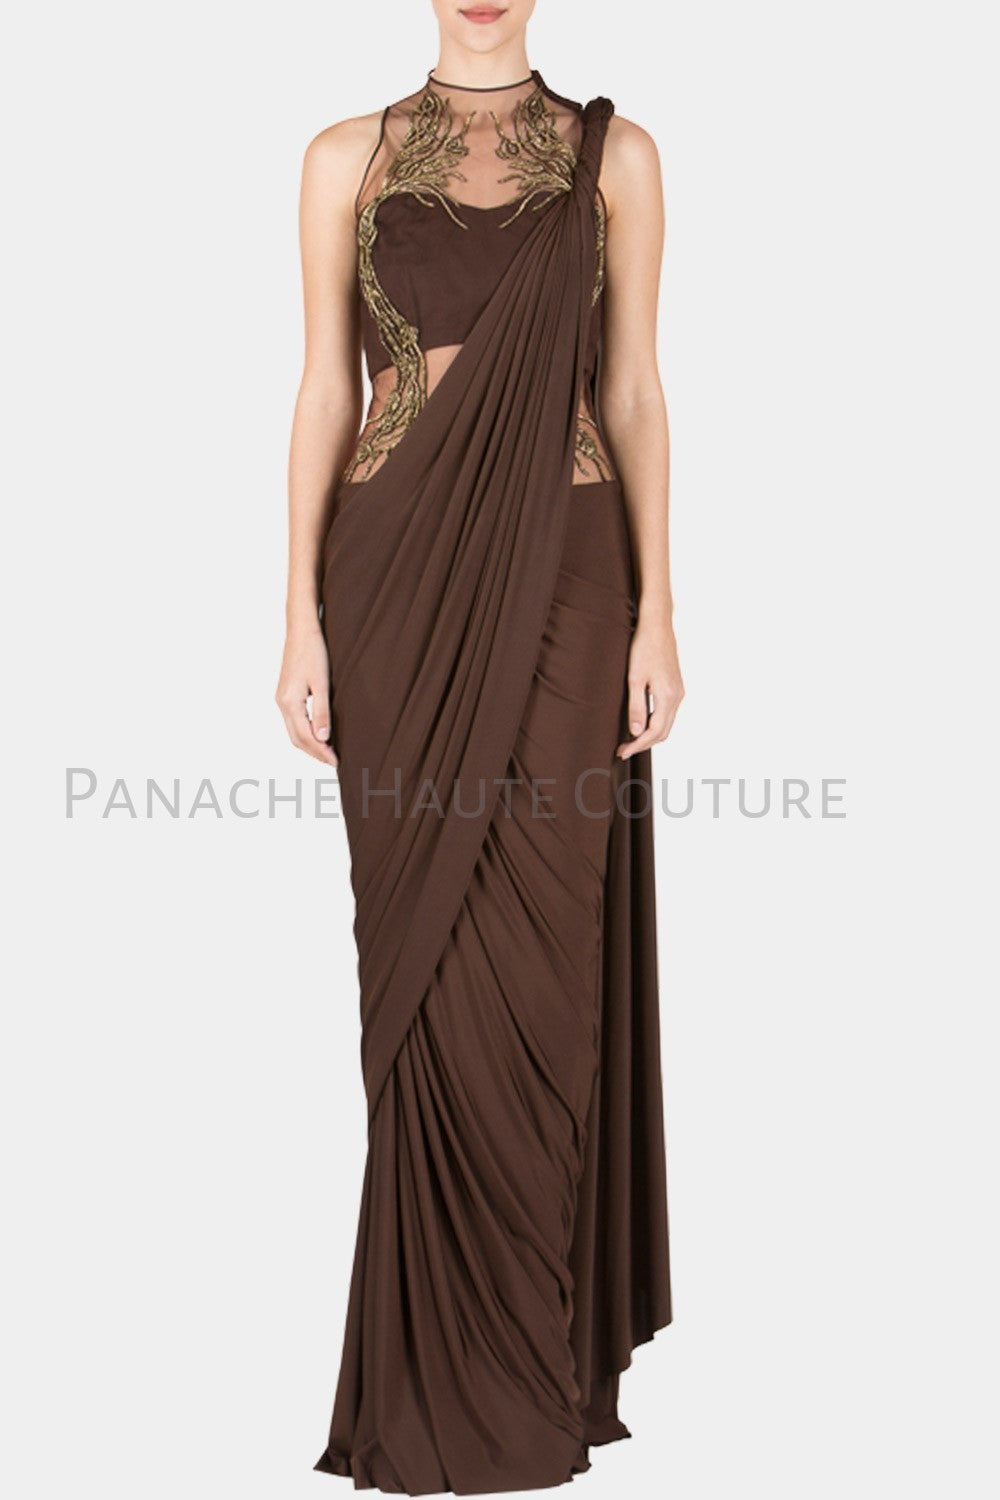 Chocolate Brown Color Designer Saree Gown – Panache Haute Couture